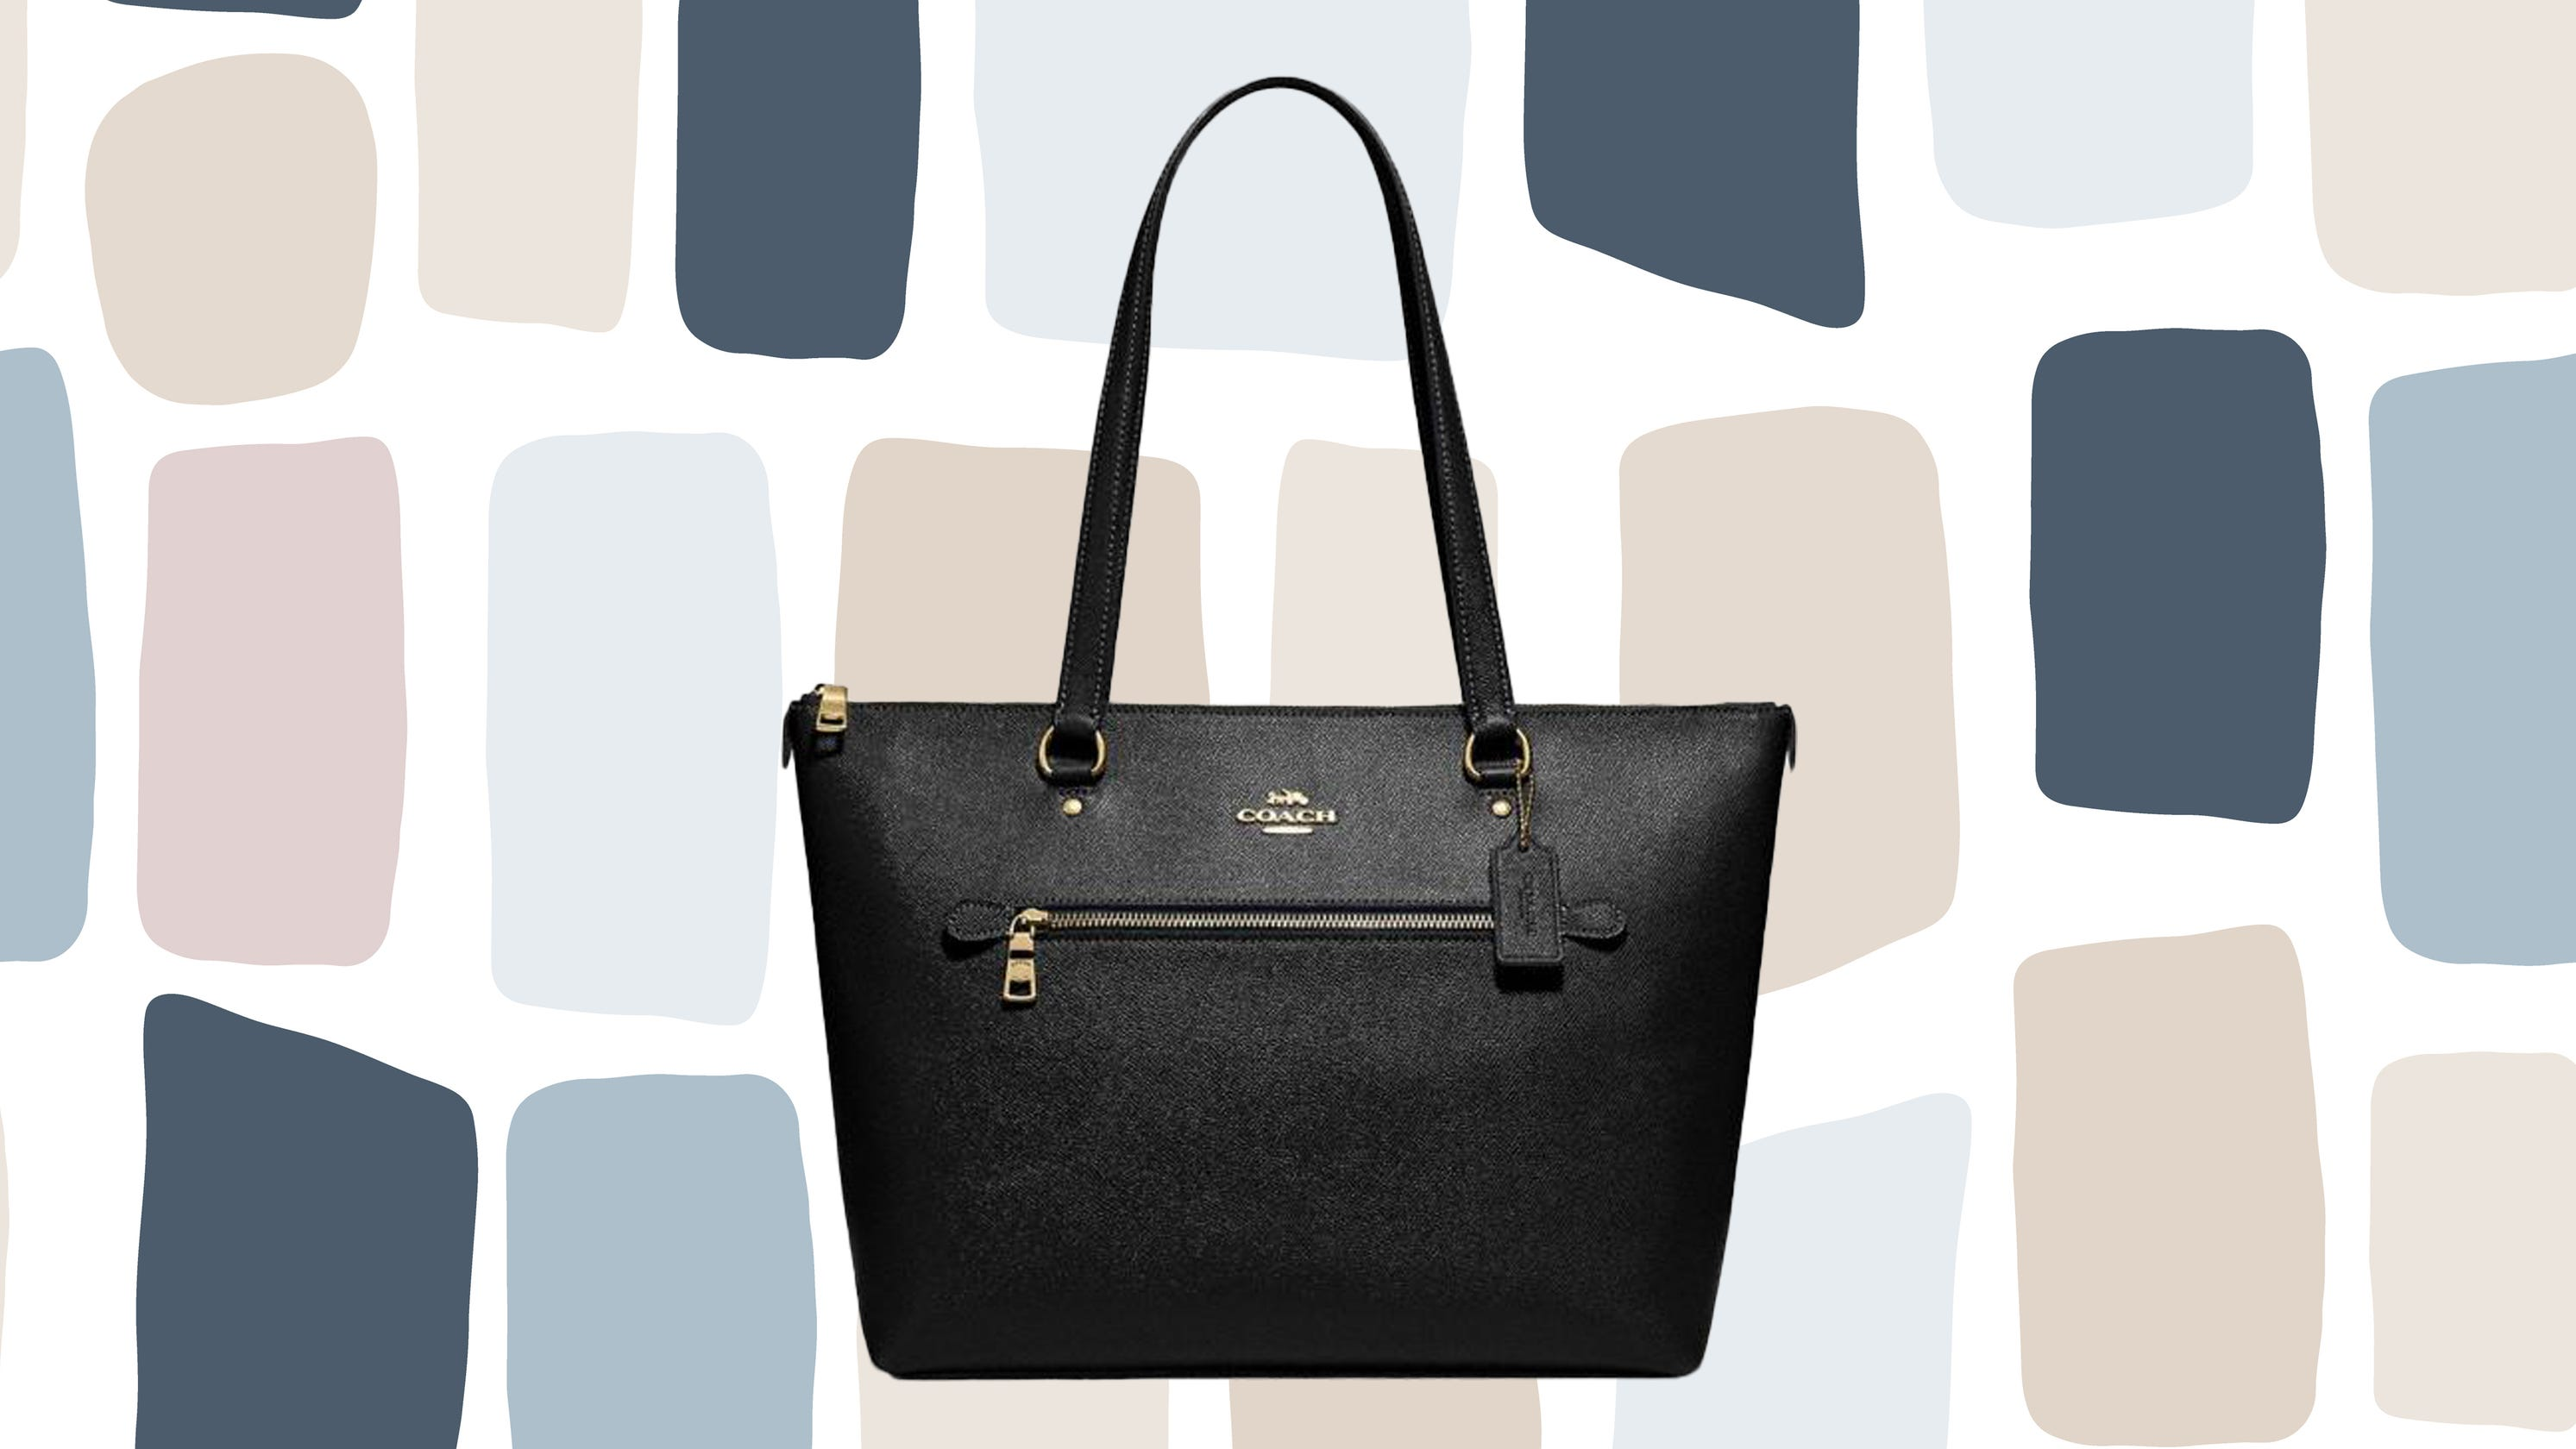 Coach bags are up to 70% off right now with an extra $10 off $100